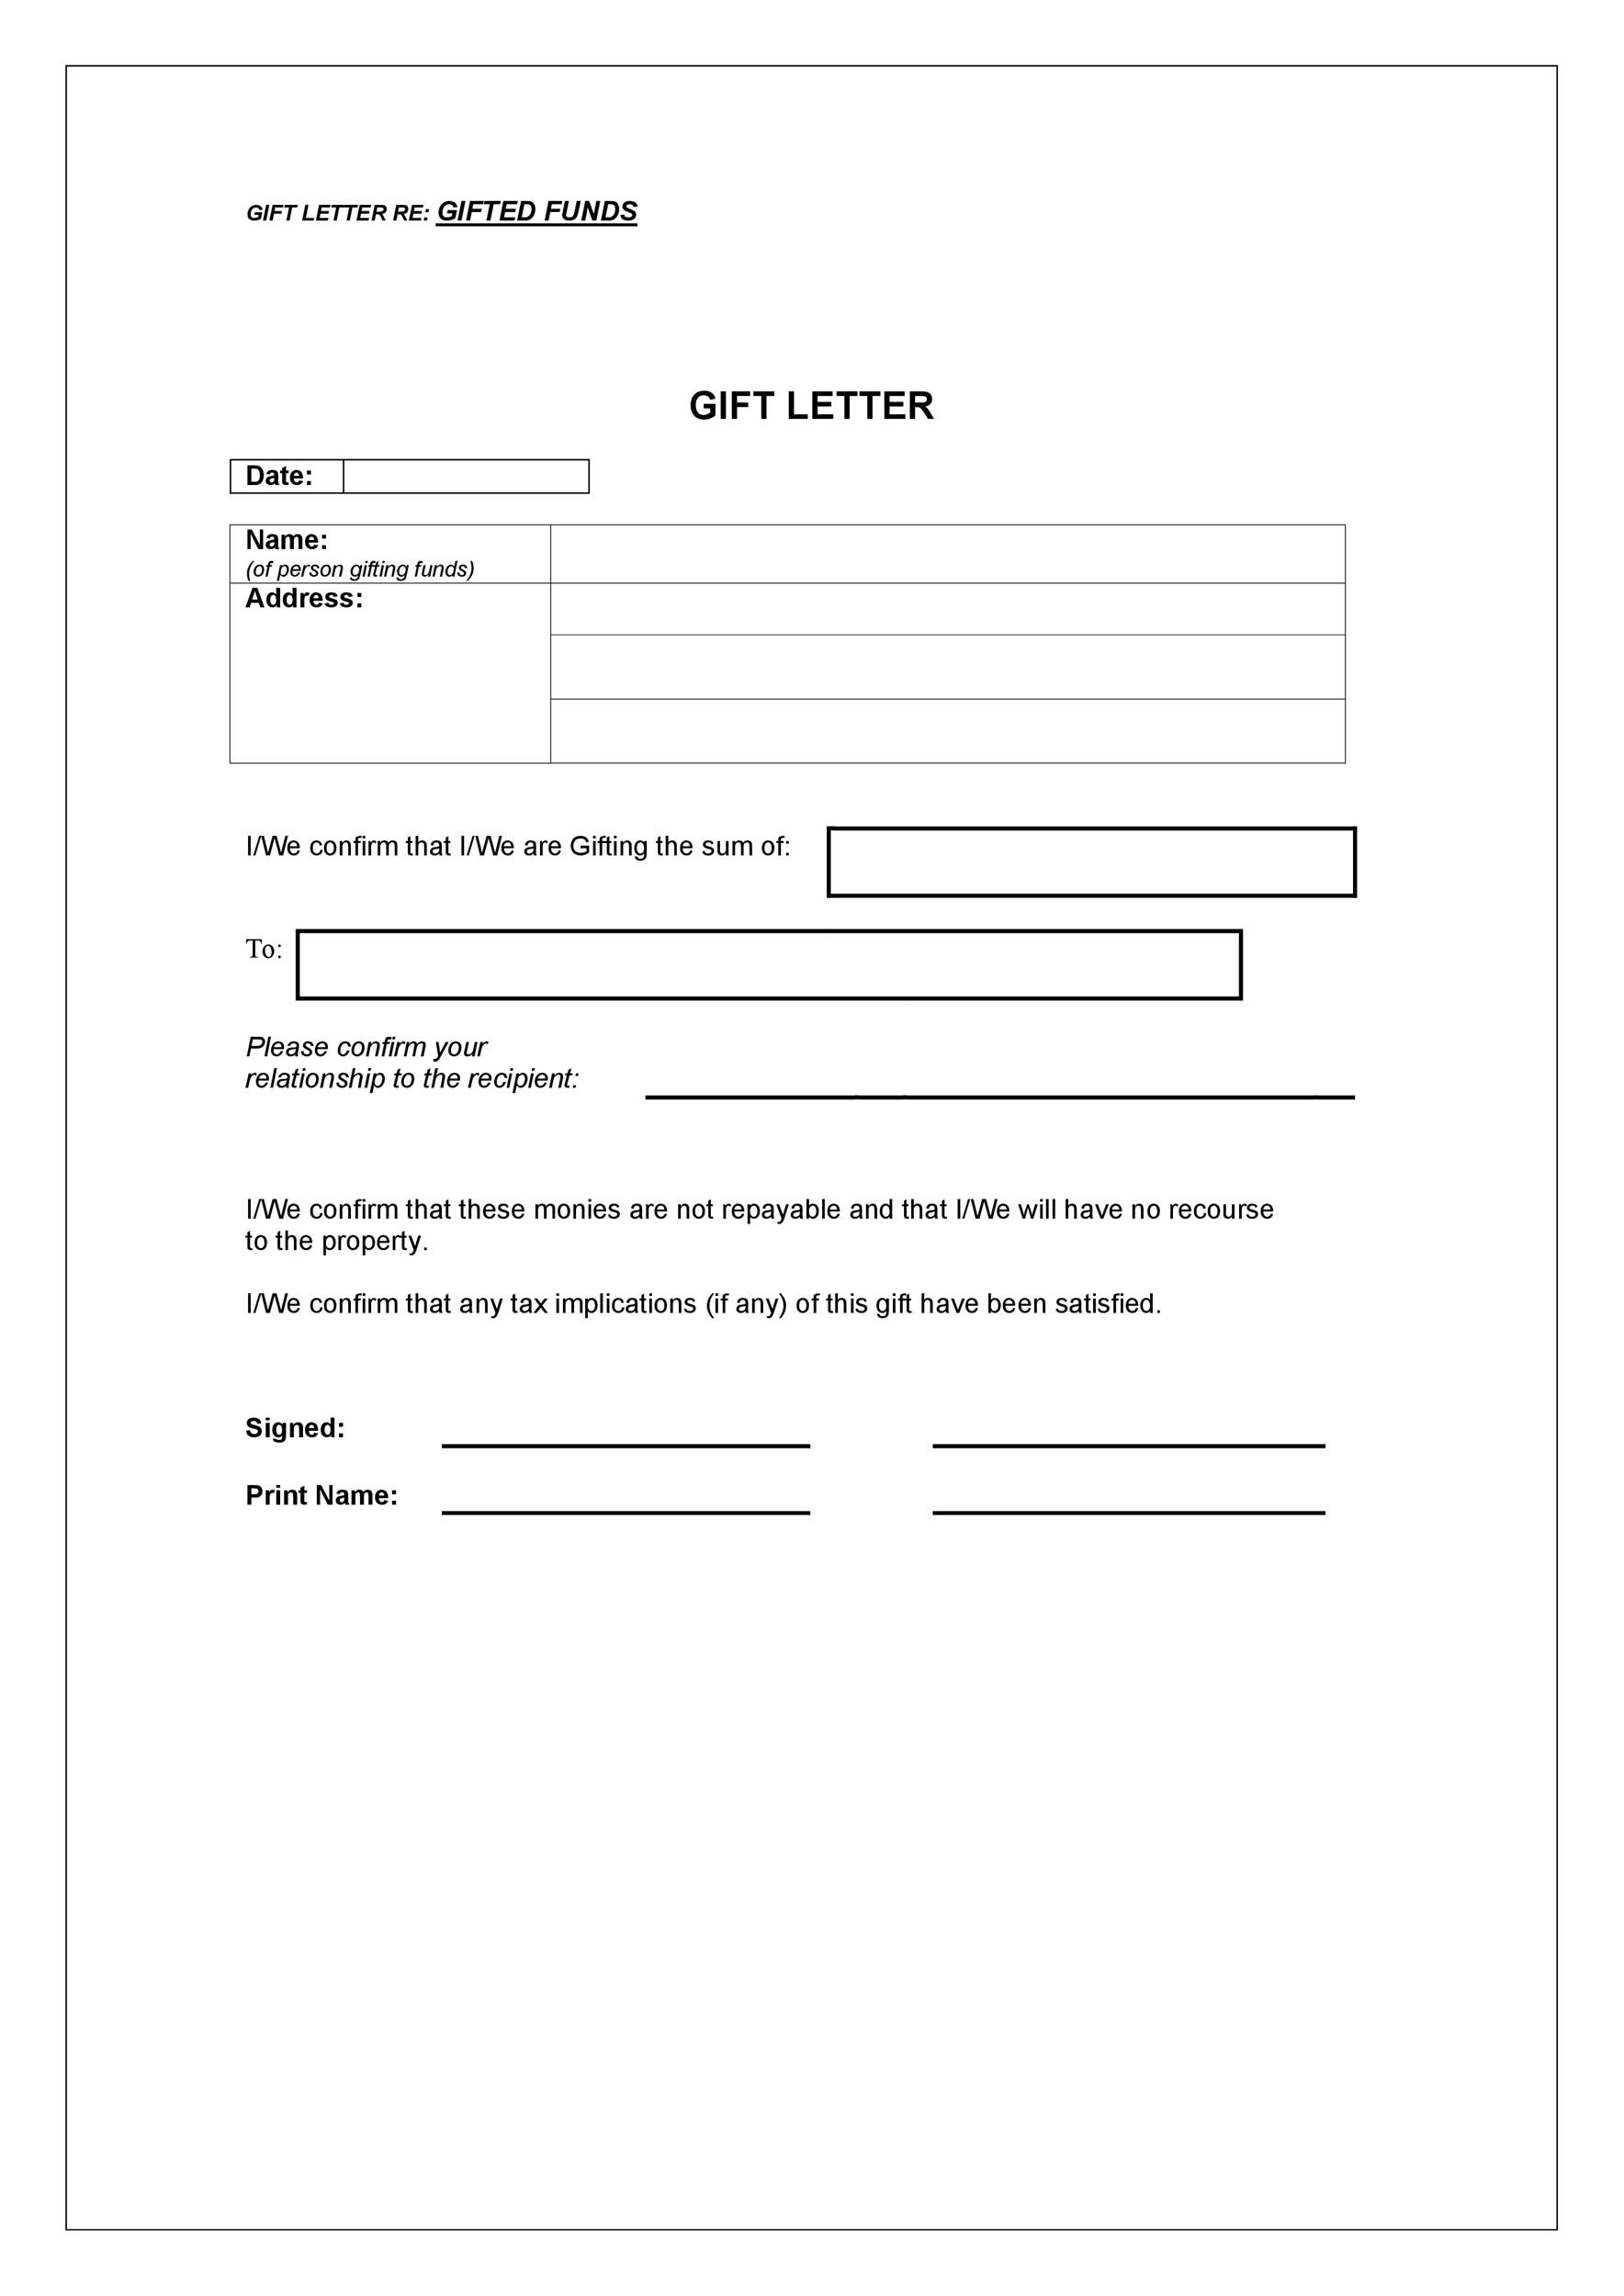 Fha Gift Letter Pdf from templatelab.com